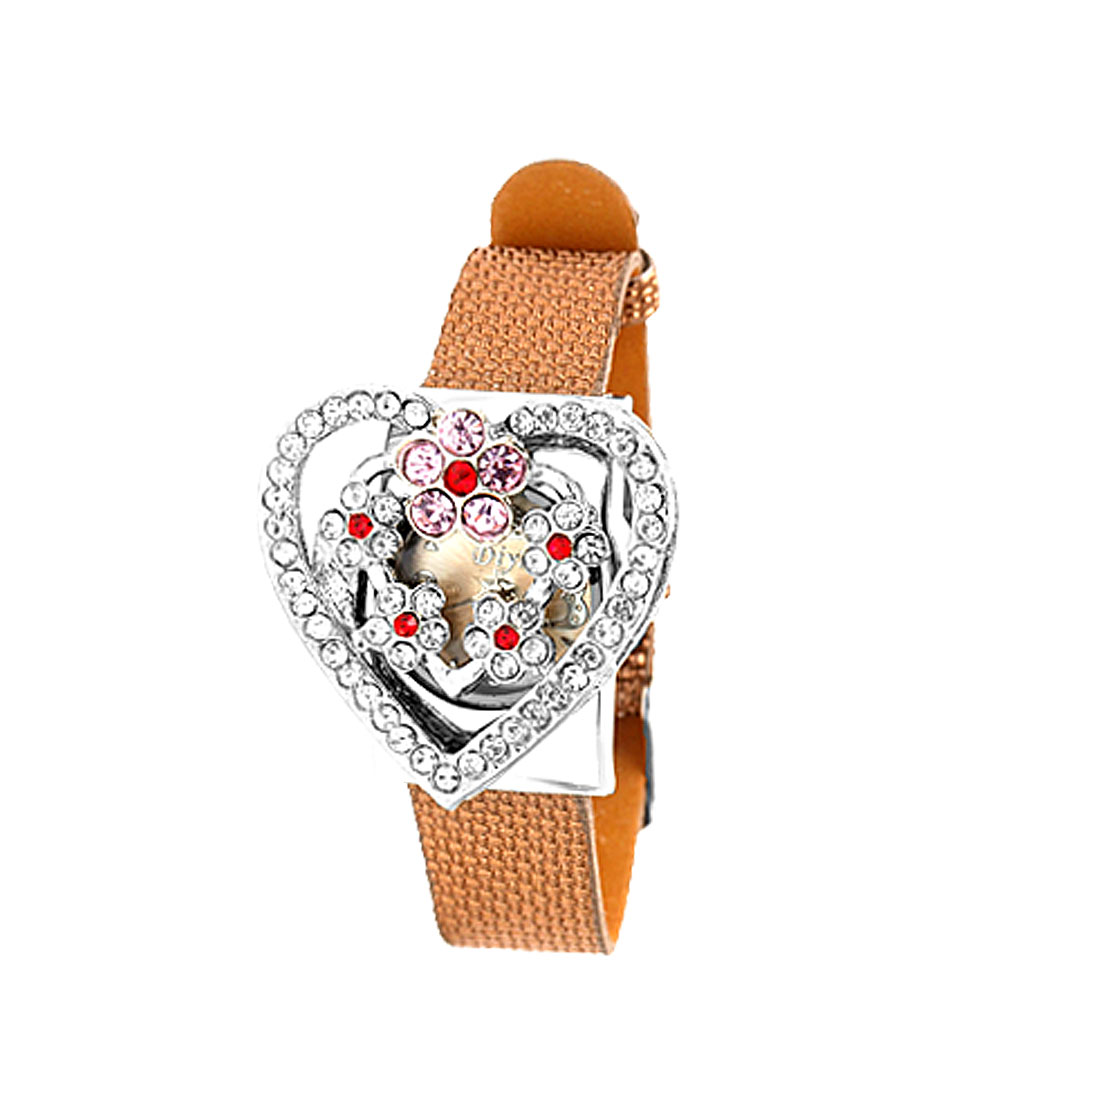 Fashion Jewelry Pink Rhinestone Heart Watchcase Brown Leather Band Ladies Watch